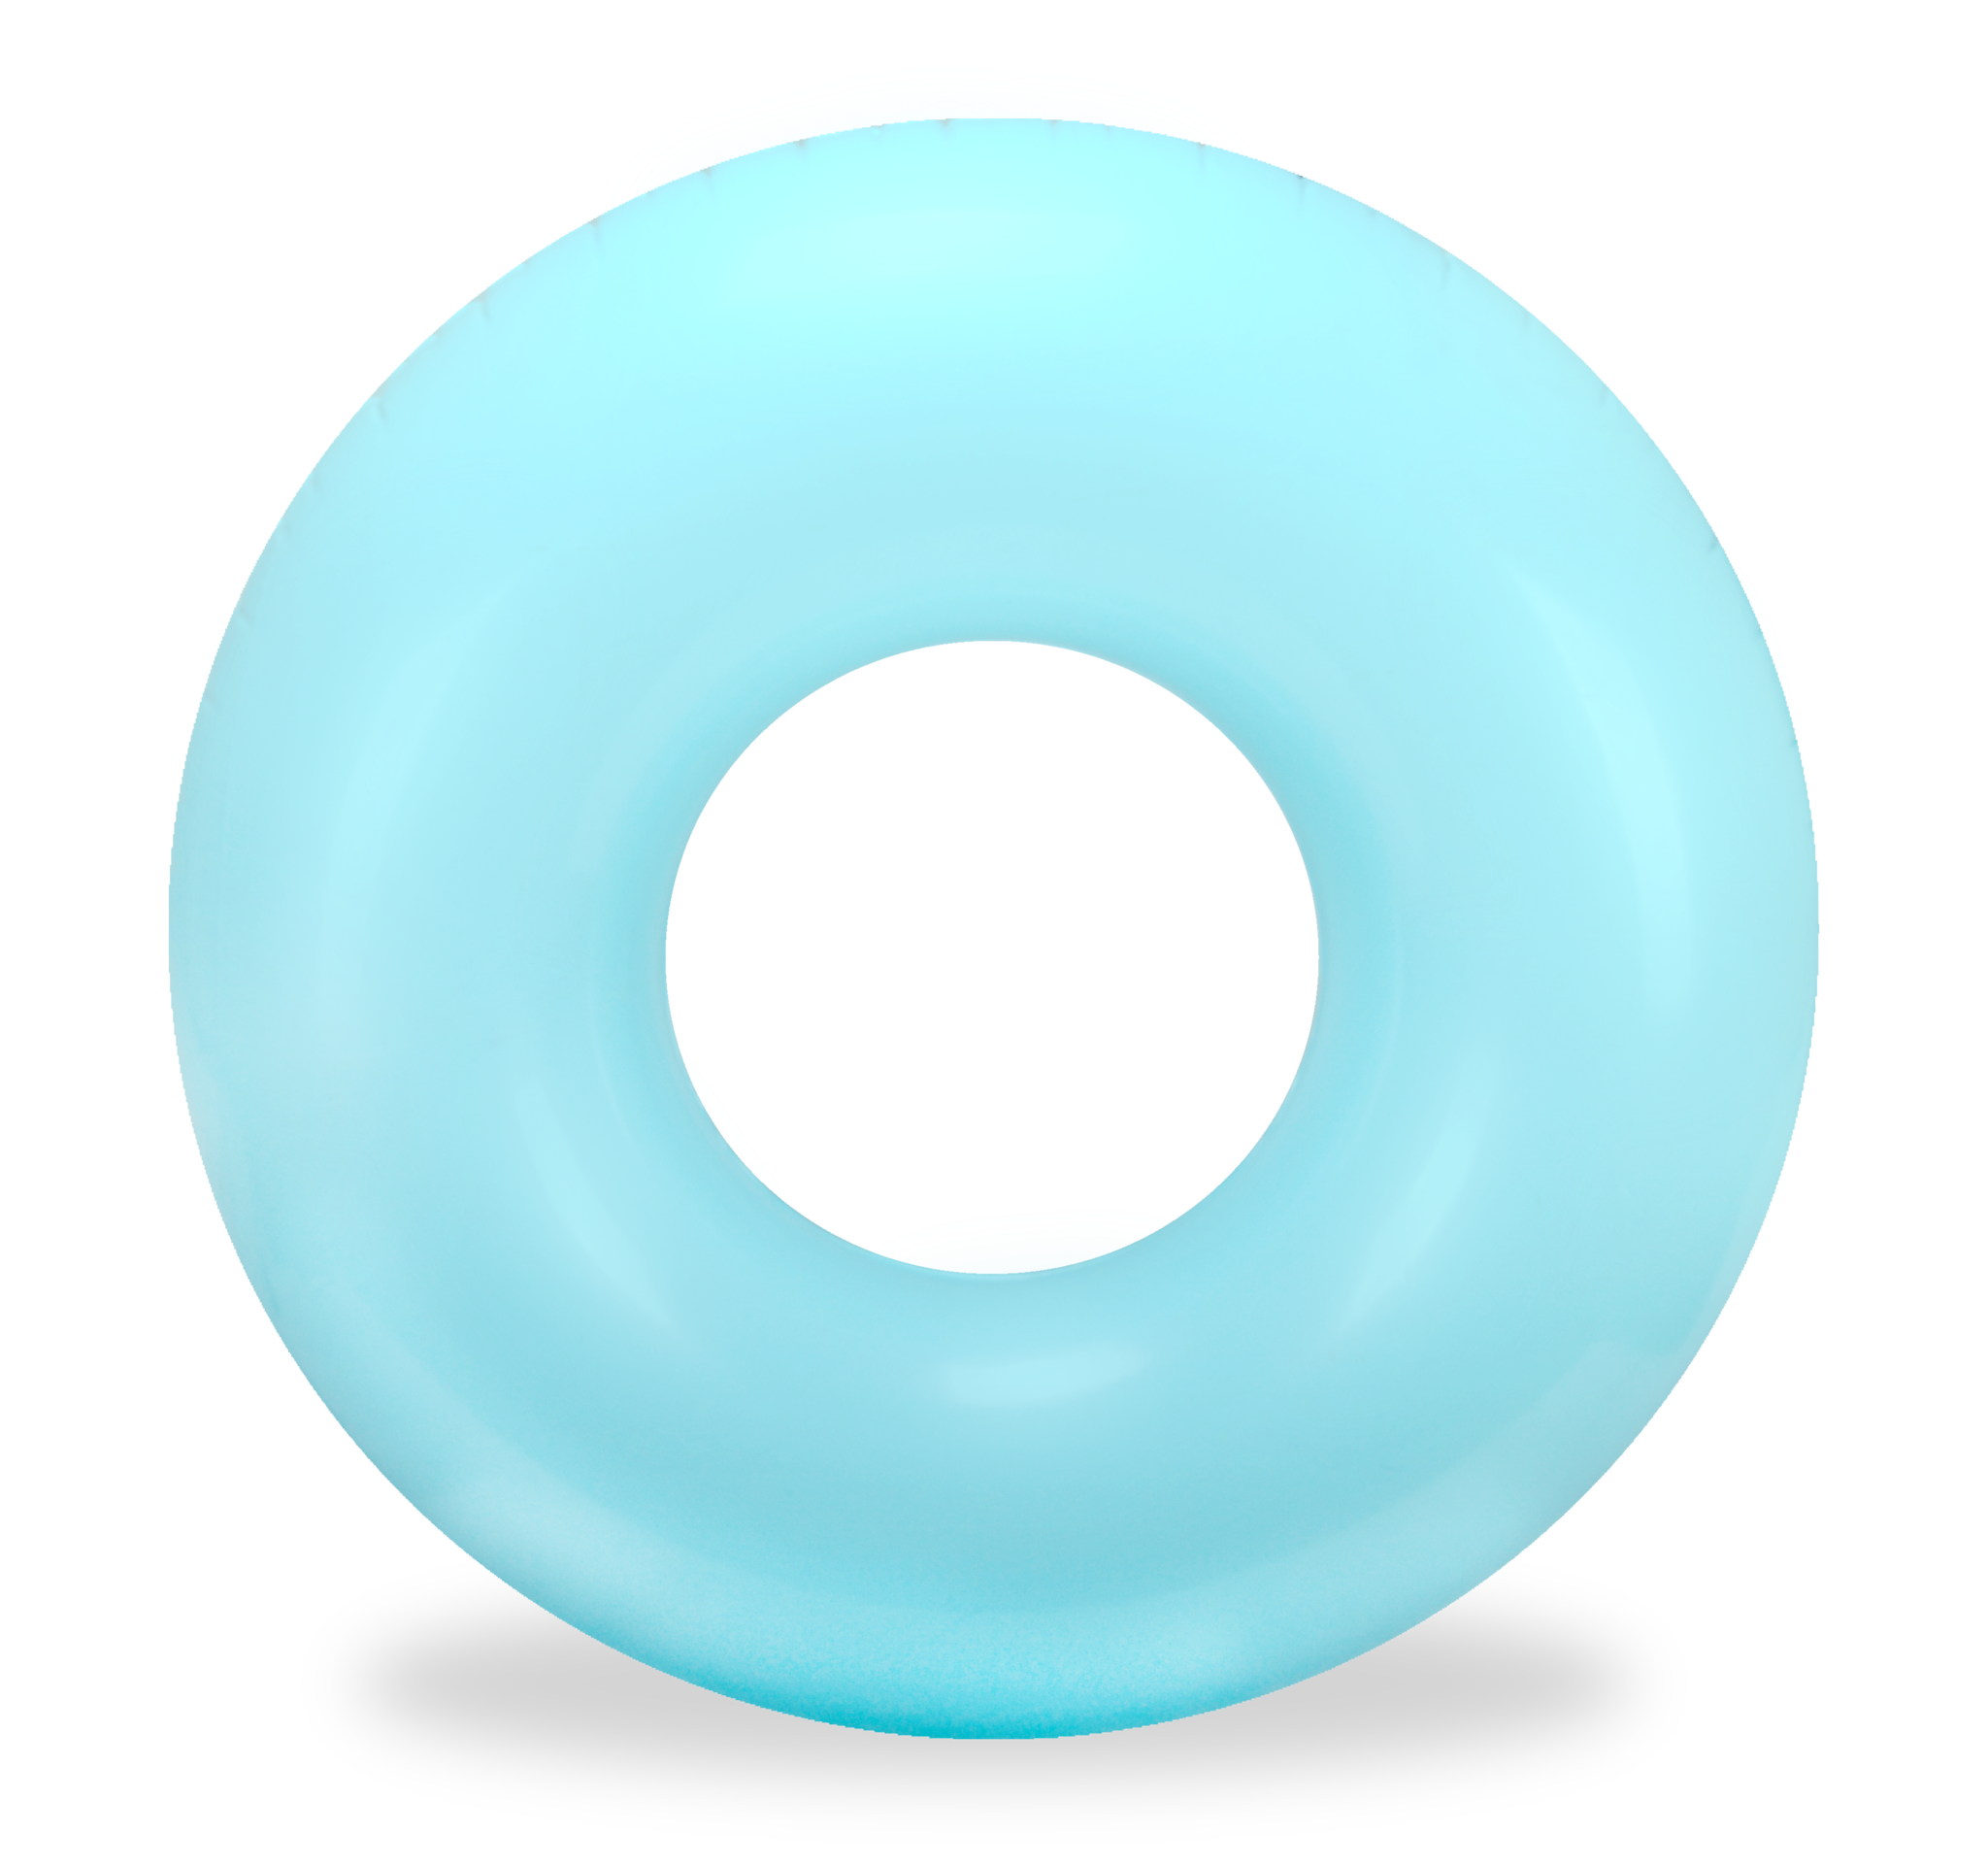 Pool transparent circle. Bright turquoise round tube